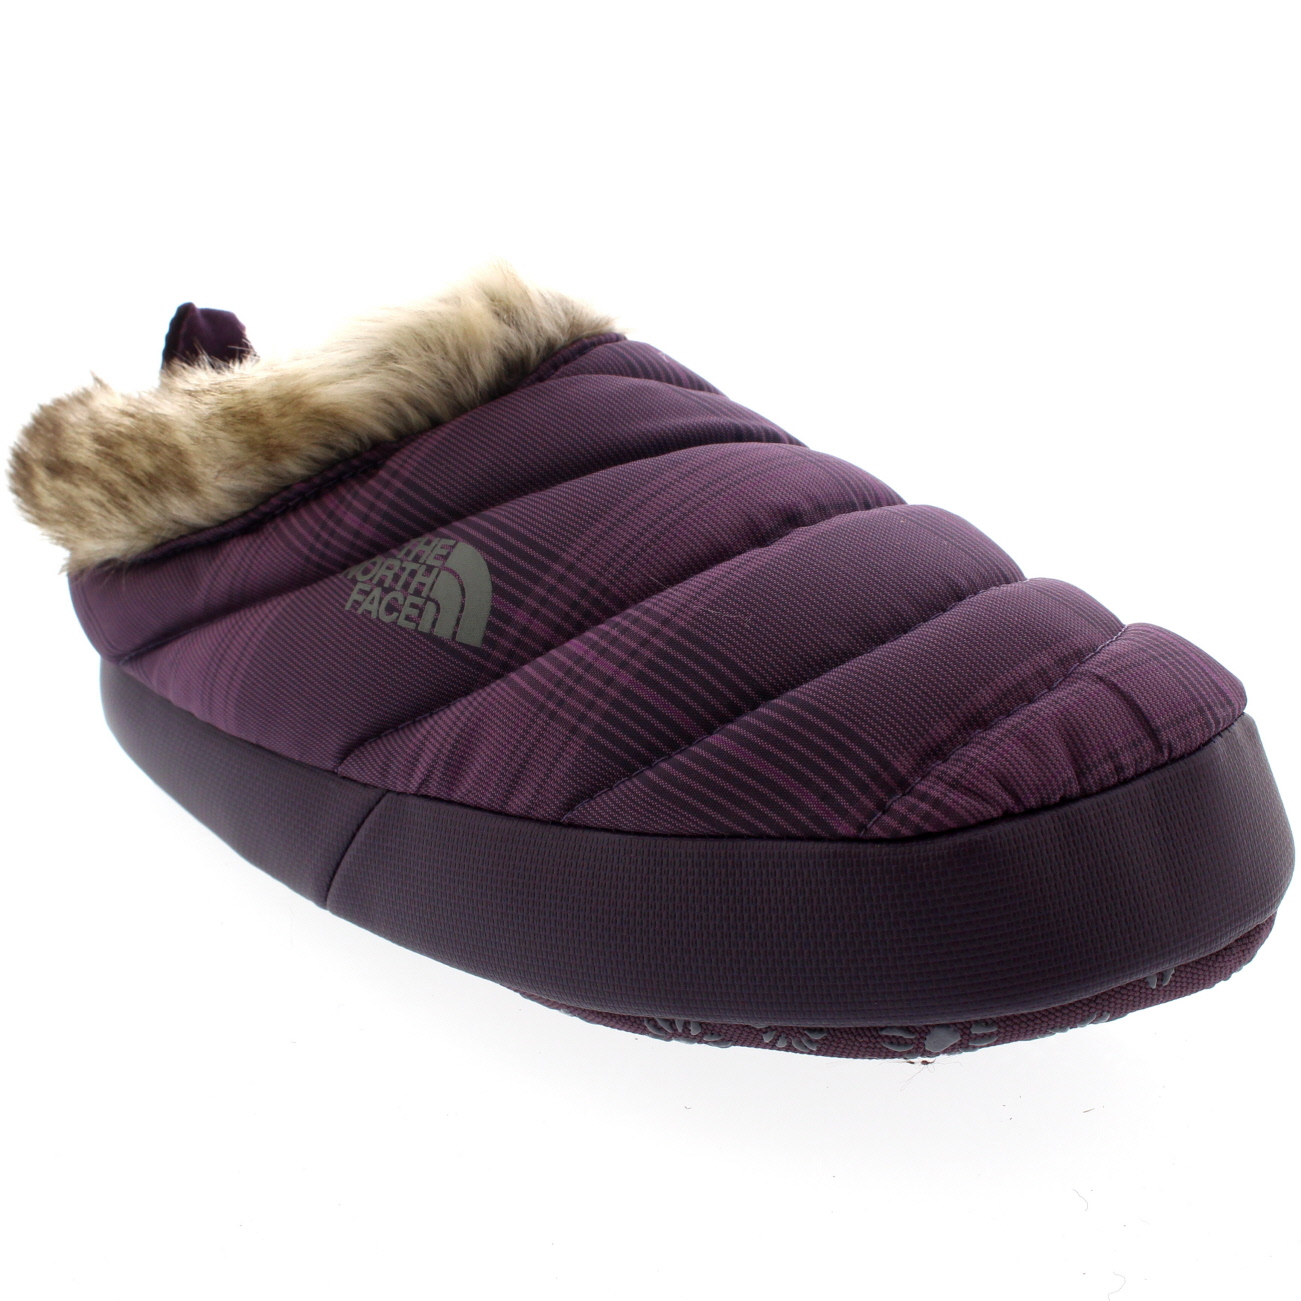 Womens-The-North-Face-Nuptse-Tent-Faux-Fur-  sc 1 st  eBay & Womens The North Face Nuptse Tent Faux Fur III Mules Winter ...